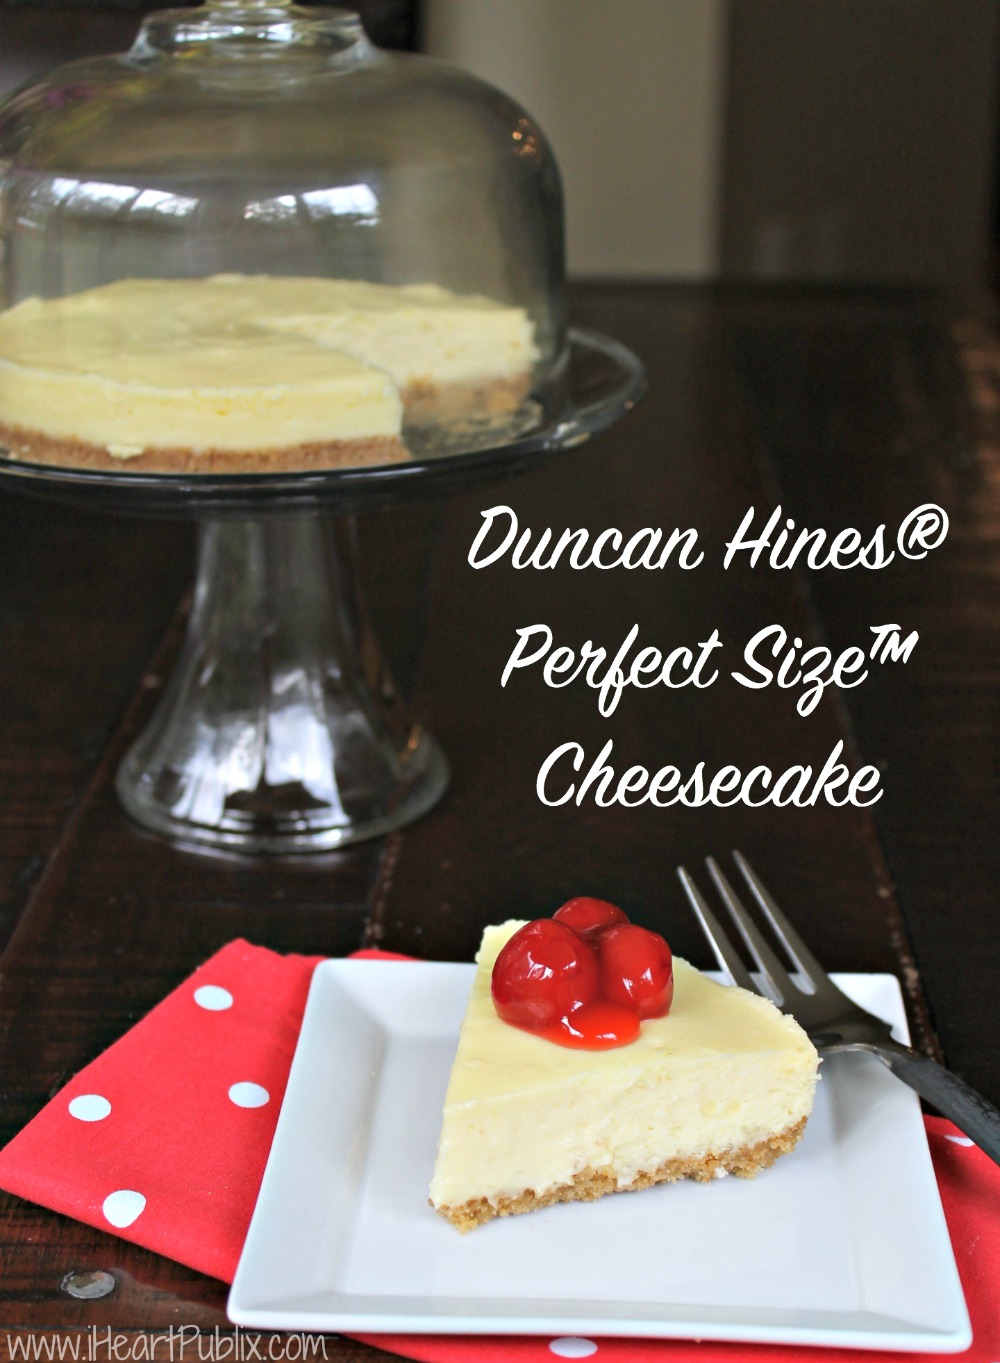 Duncan Hines® Perfect Size™ Cheesecake